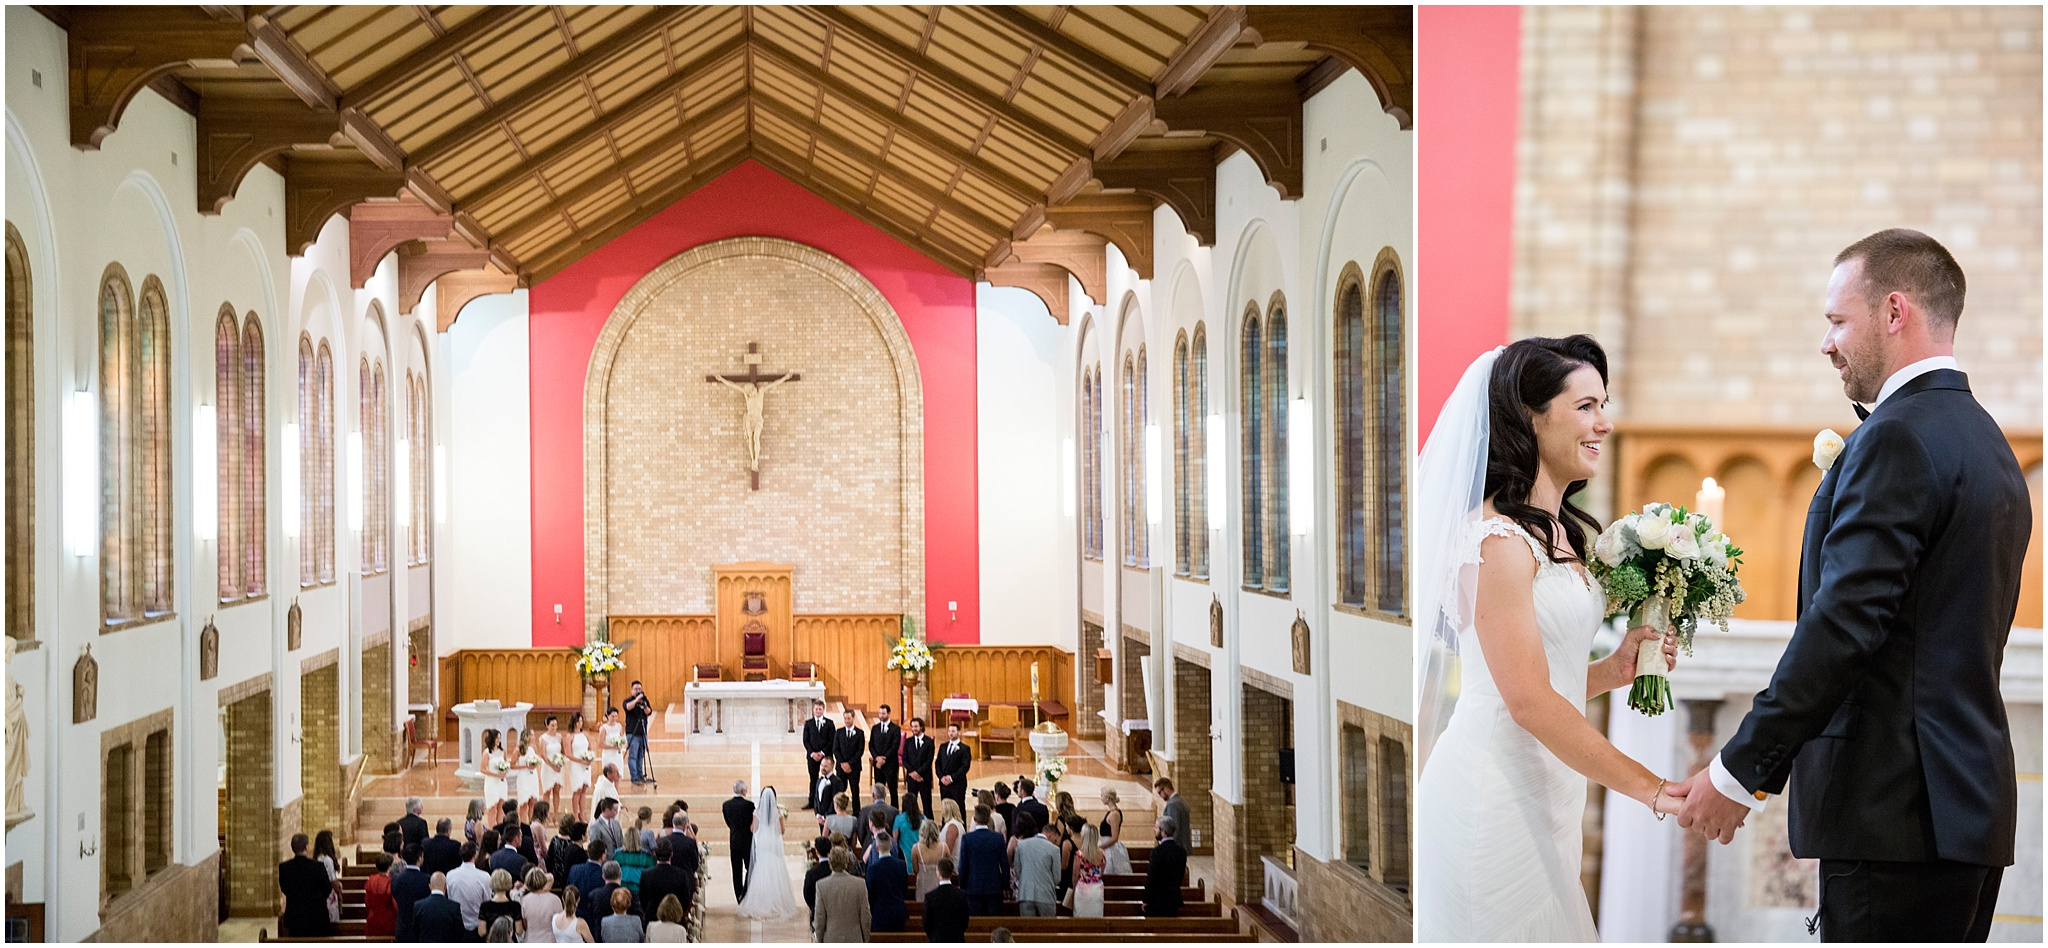 Couple getting married at St Christopher's Cathedral in Manuka.